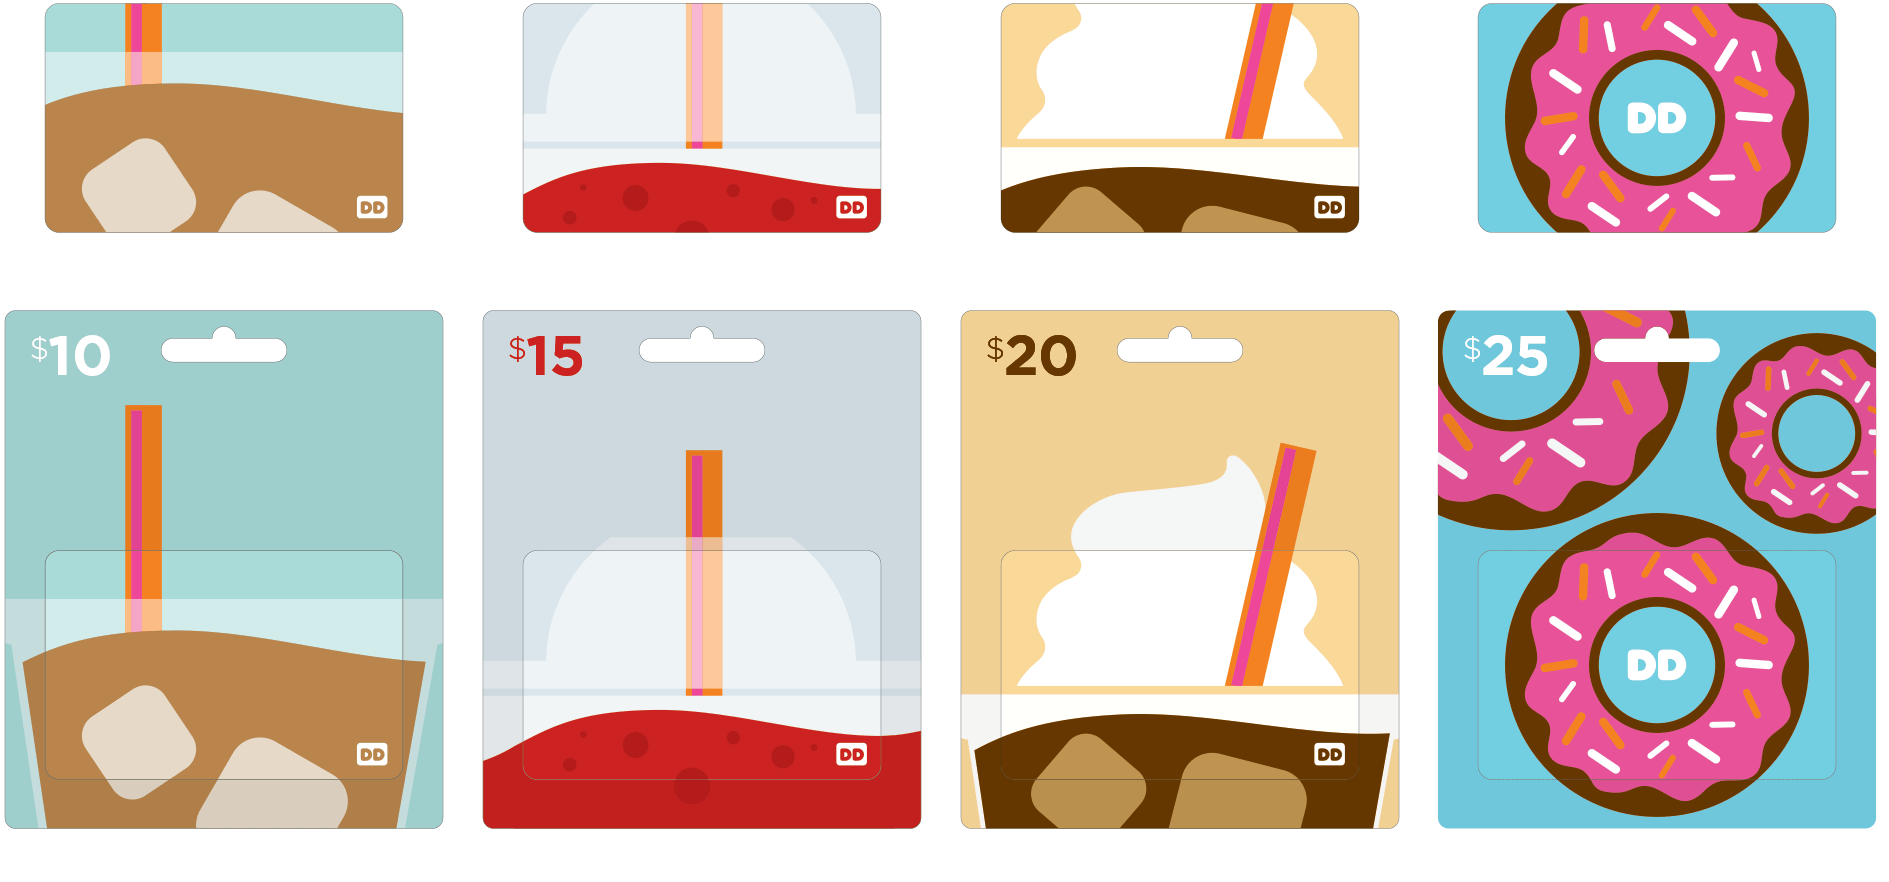 DD_GiftCardTag_Lineup.png